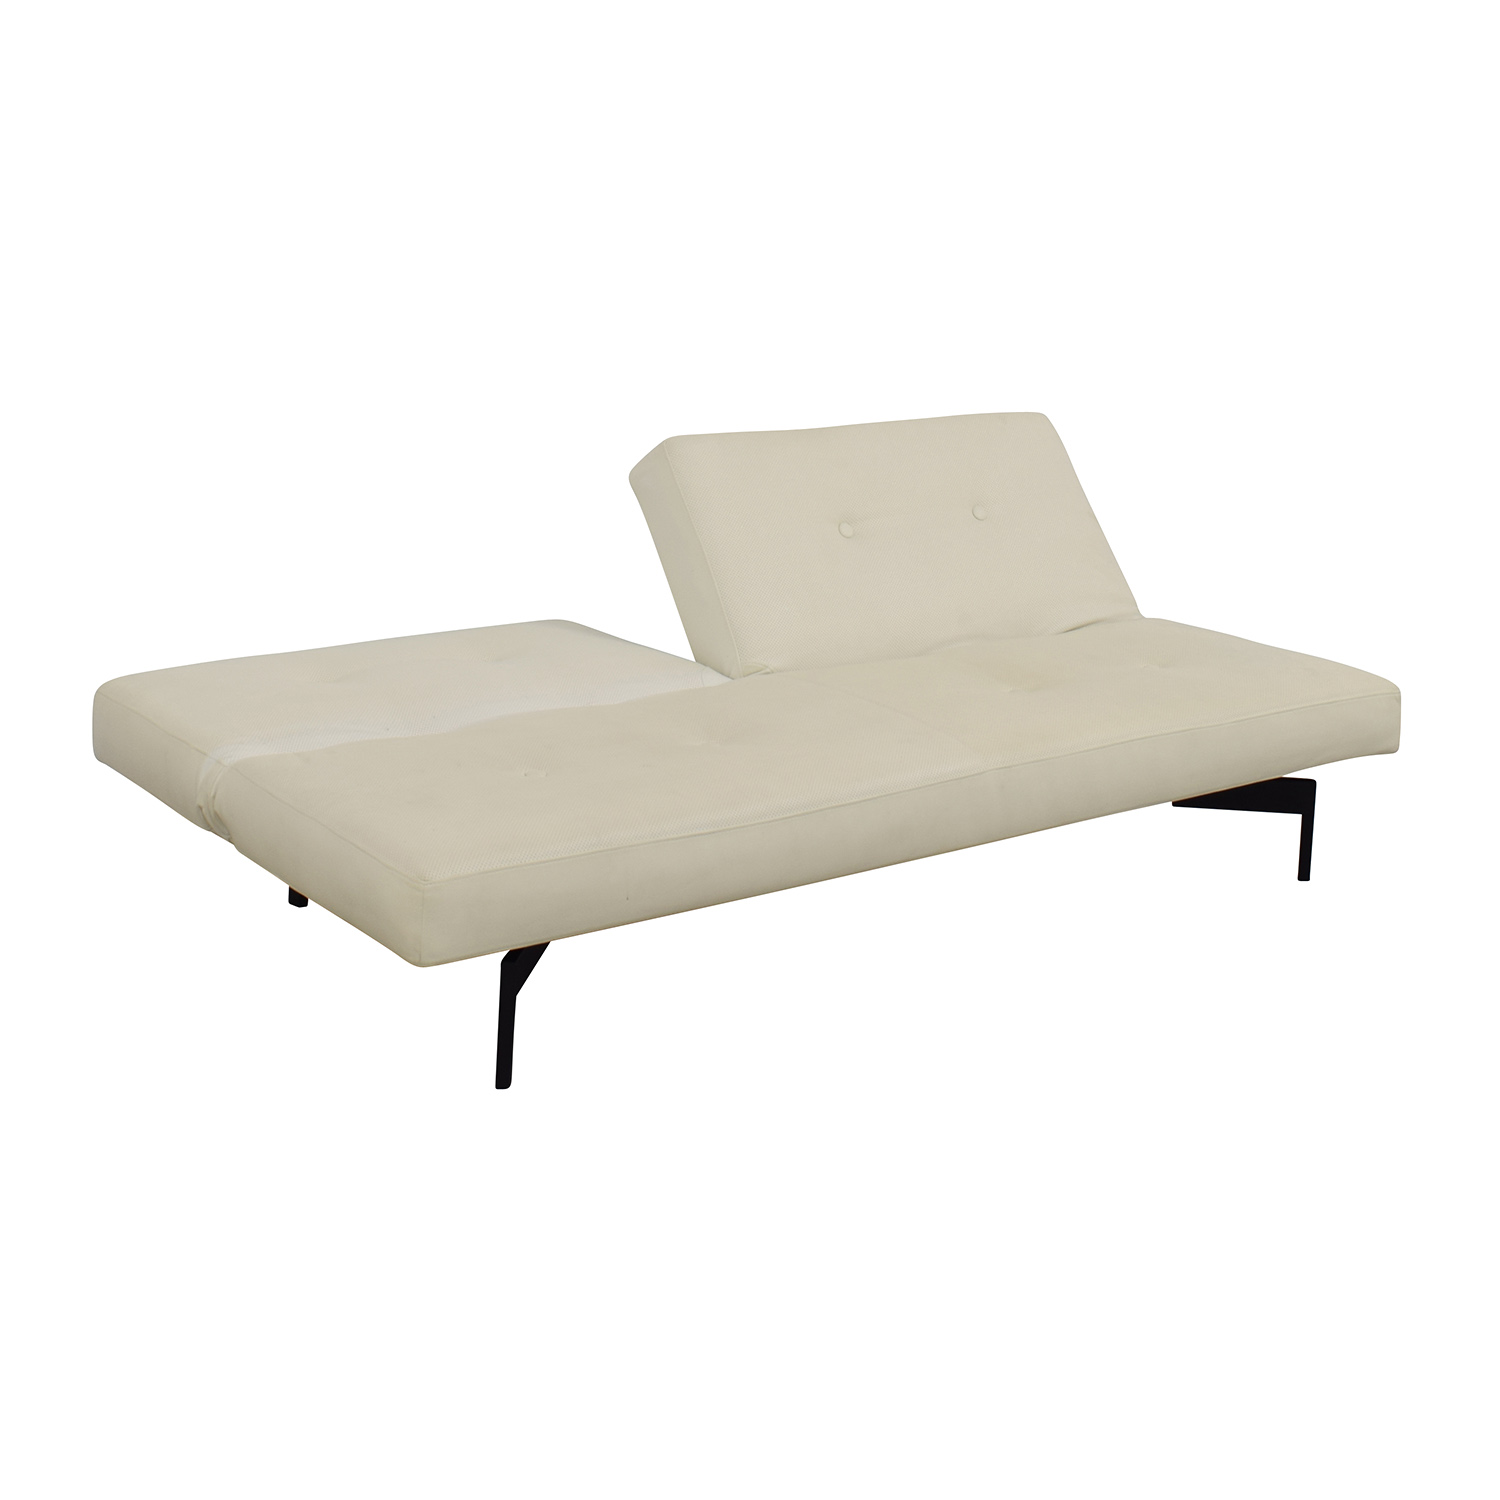 abc sofa bed sofaworks reading opening 85 off carpet and home ivory